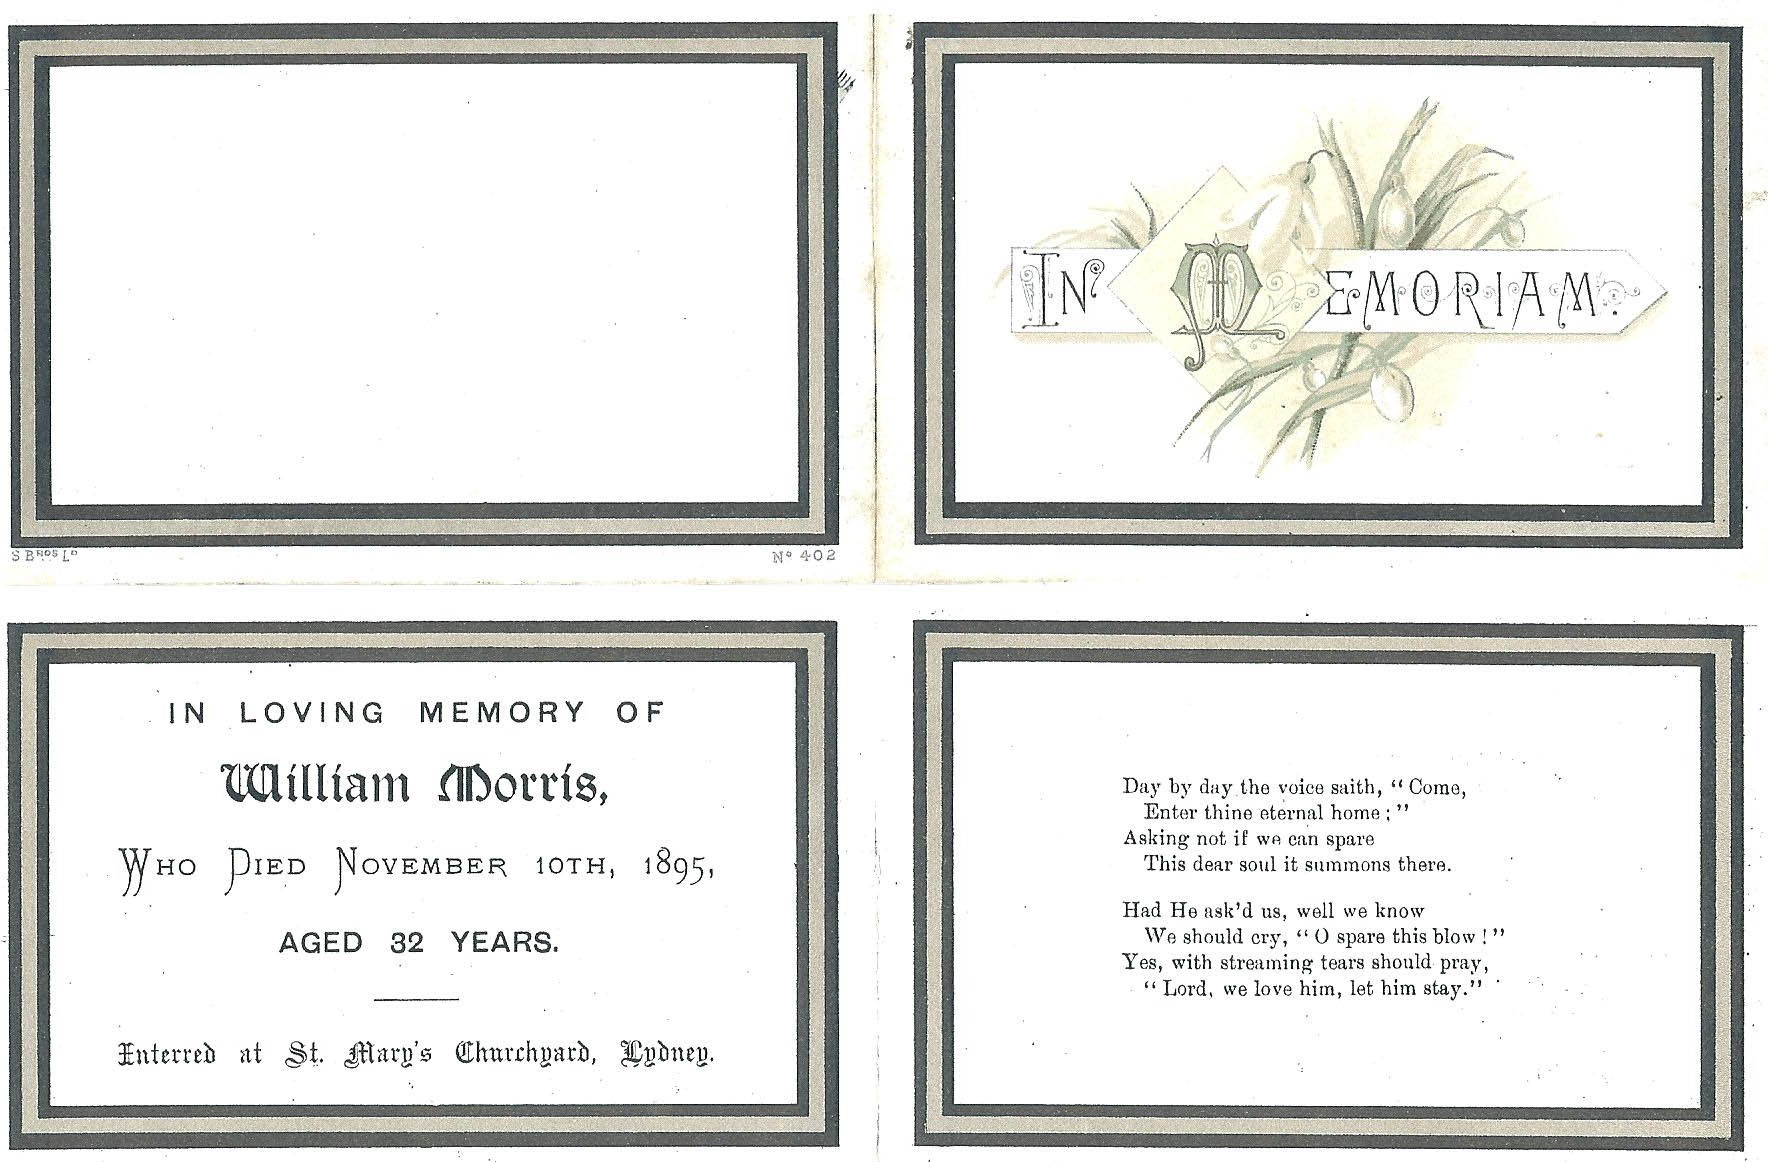 Memorial/funeral card for Police Sergeant William Morris, murdered in the Forest of Dean, buried at St Mary's Church, Lydney. (Gloucestershire Police Archive URN 1706)